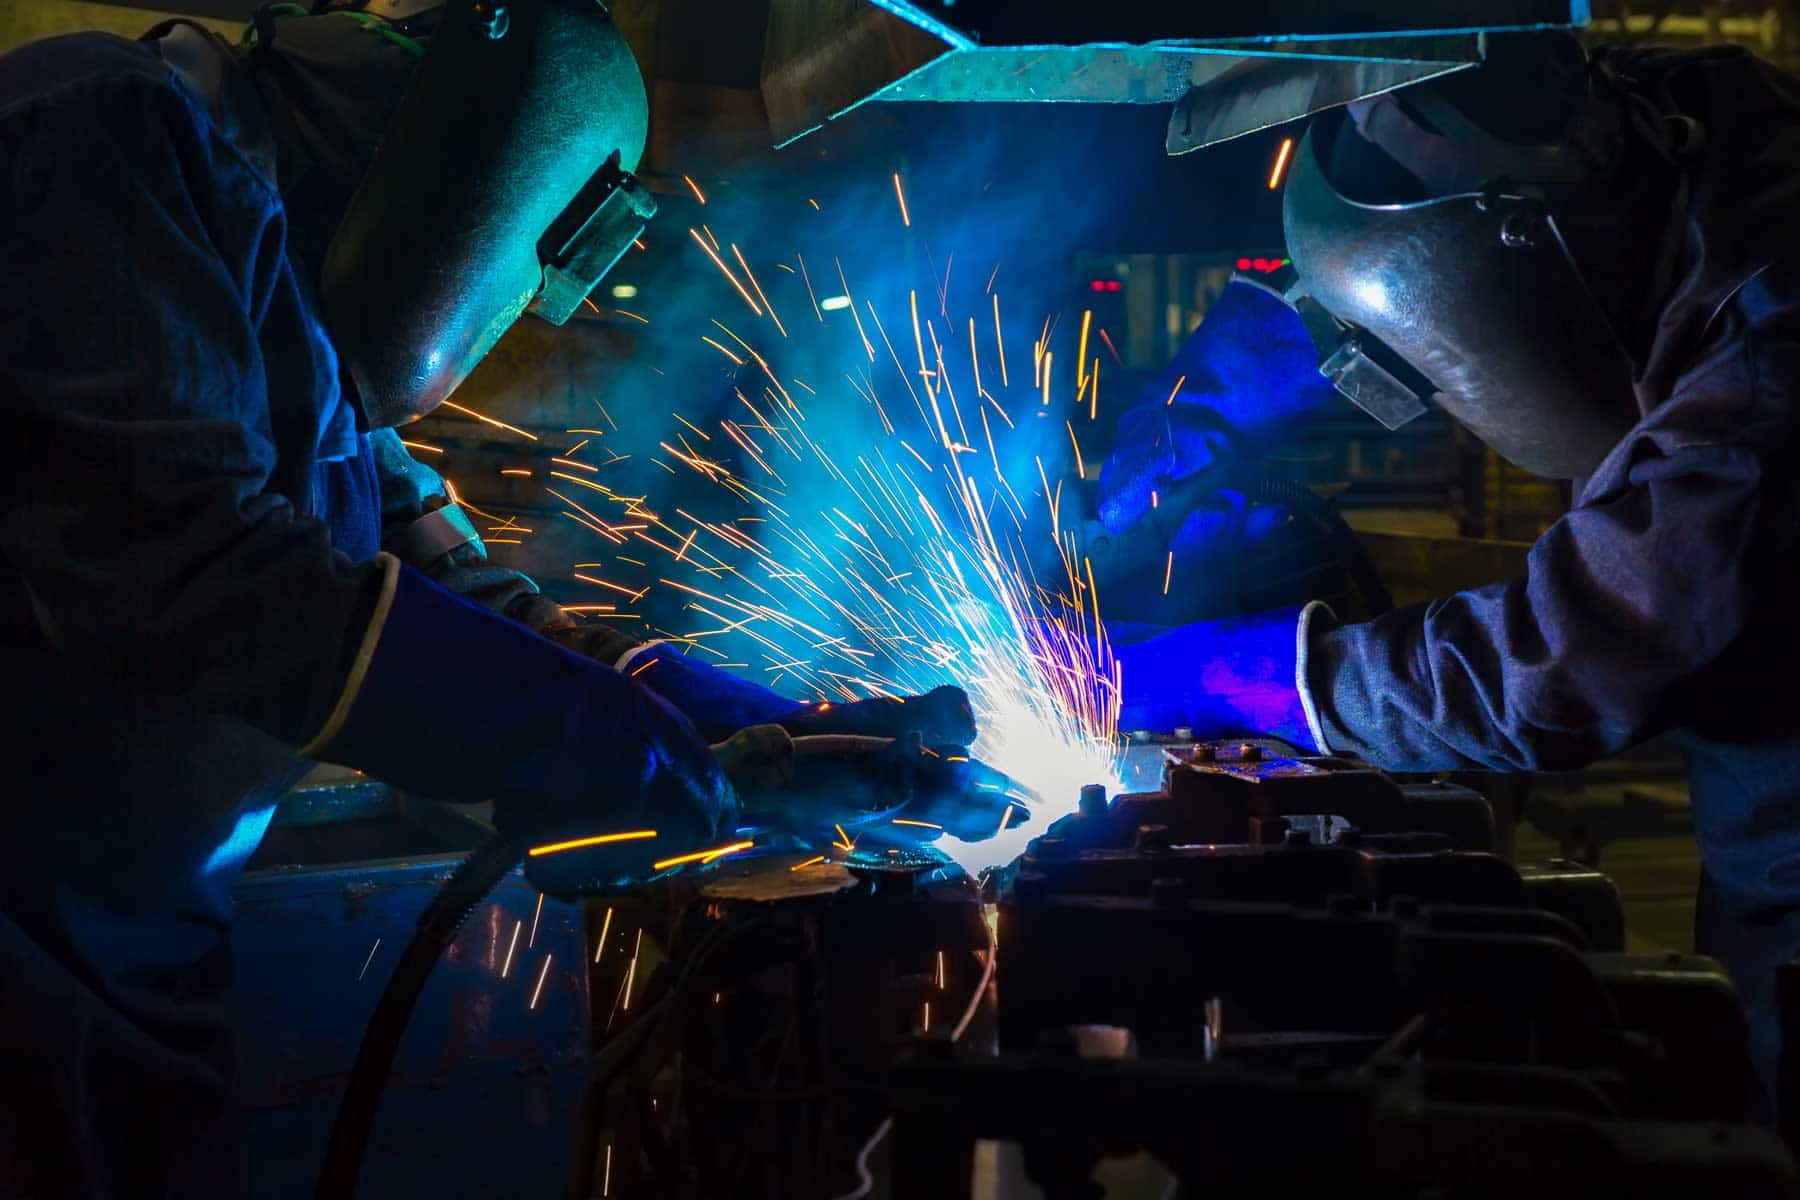 Steel Fabrication Capabilities Define Titletown Manufacturing